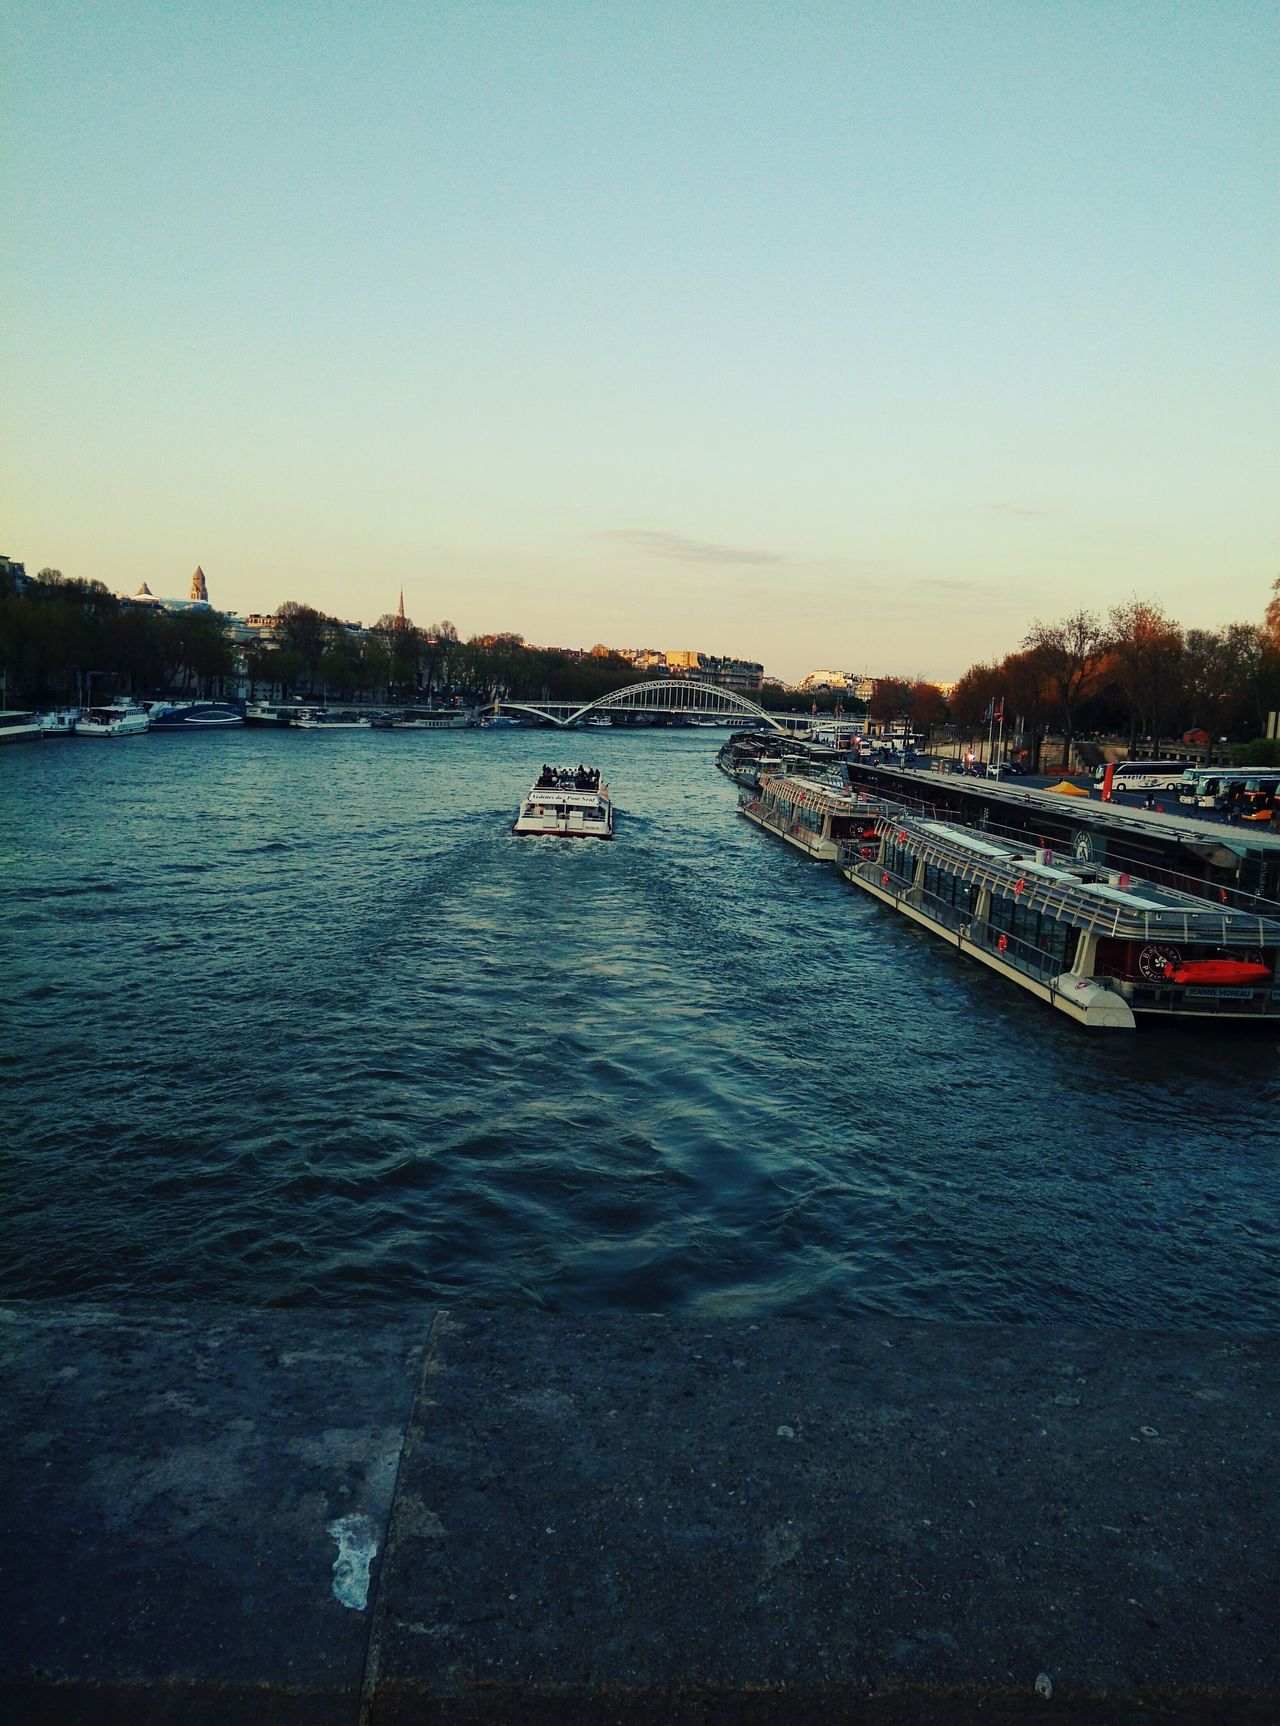 So cliché.. But I love this place. When I walked from the left bank to the right bank of Paris (from Tour Eiffel to Trocadéro ) I couldn'thelp but admire.. Pont d'Iéna (Jena Bridge) Paris Paris Je T Aime Paris ❤ Paris, France  Parisweloveyou 7e arr Parisian Cliché ClichéShots Boats Laseine Seine River Bridge